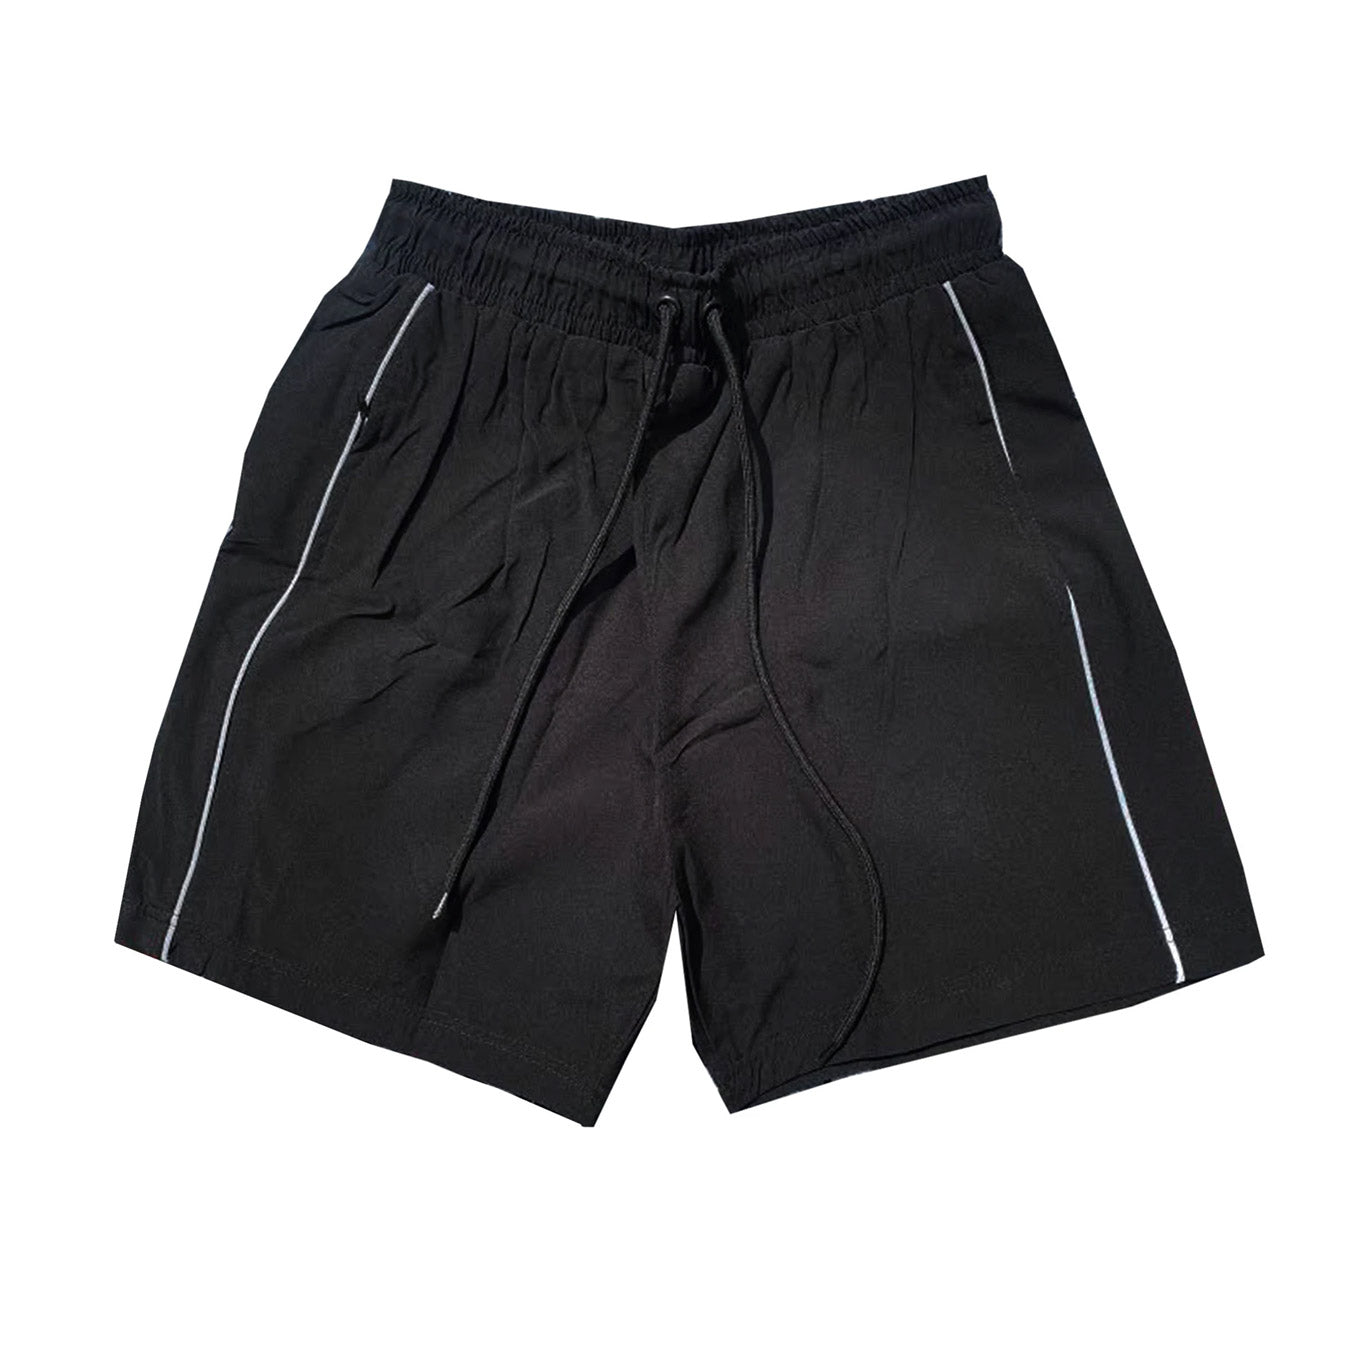 "ByKiy 3M Stretchbreaker Short ""Black"""